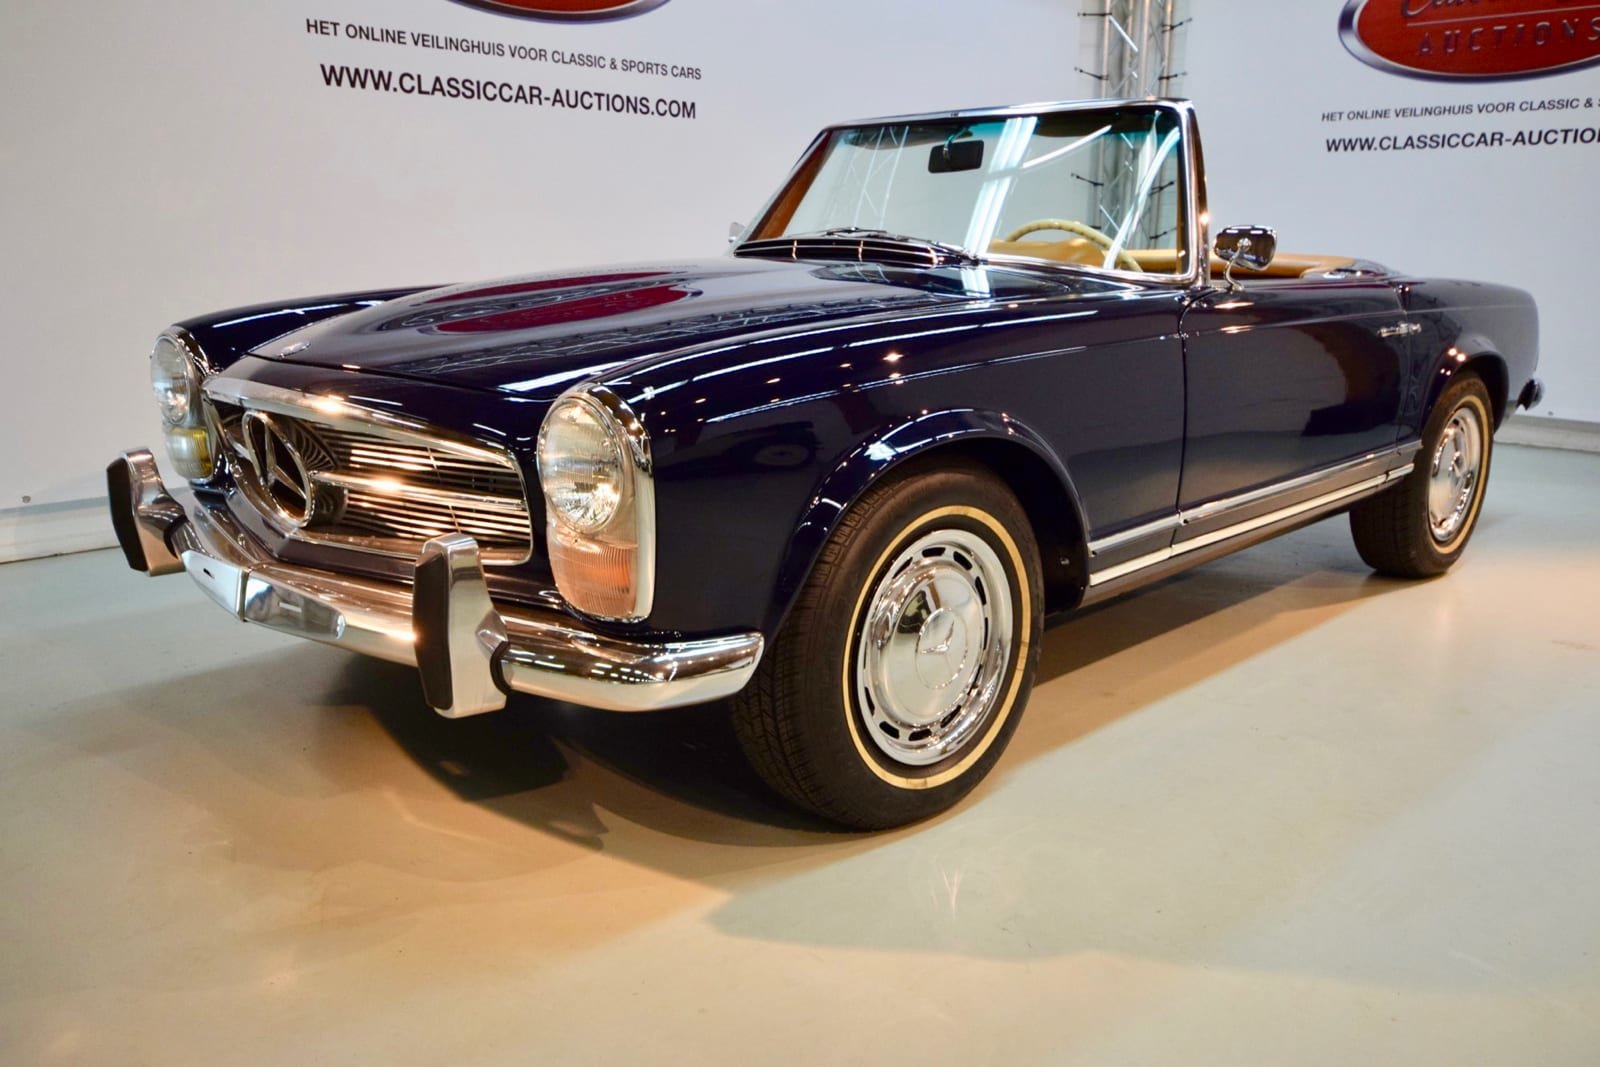 Mercedes-Benz 230 SL Pagode 1964 For Sale by Auction (picture 1 of 6)